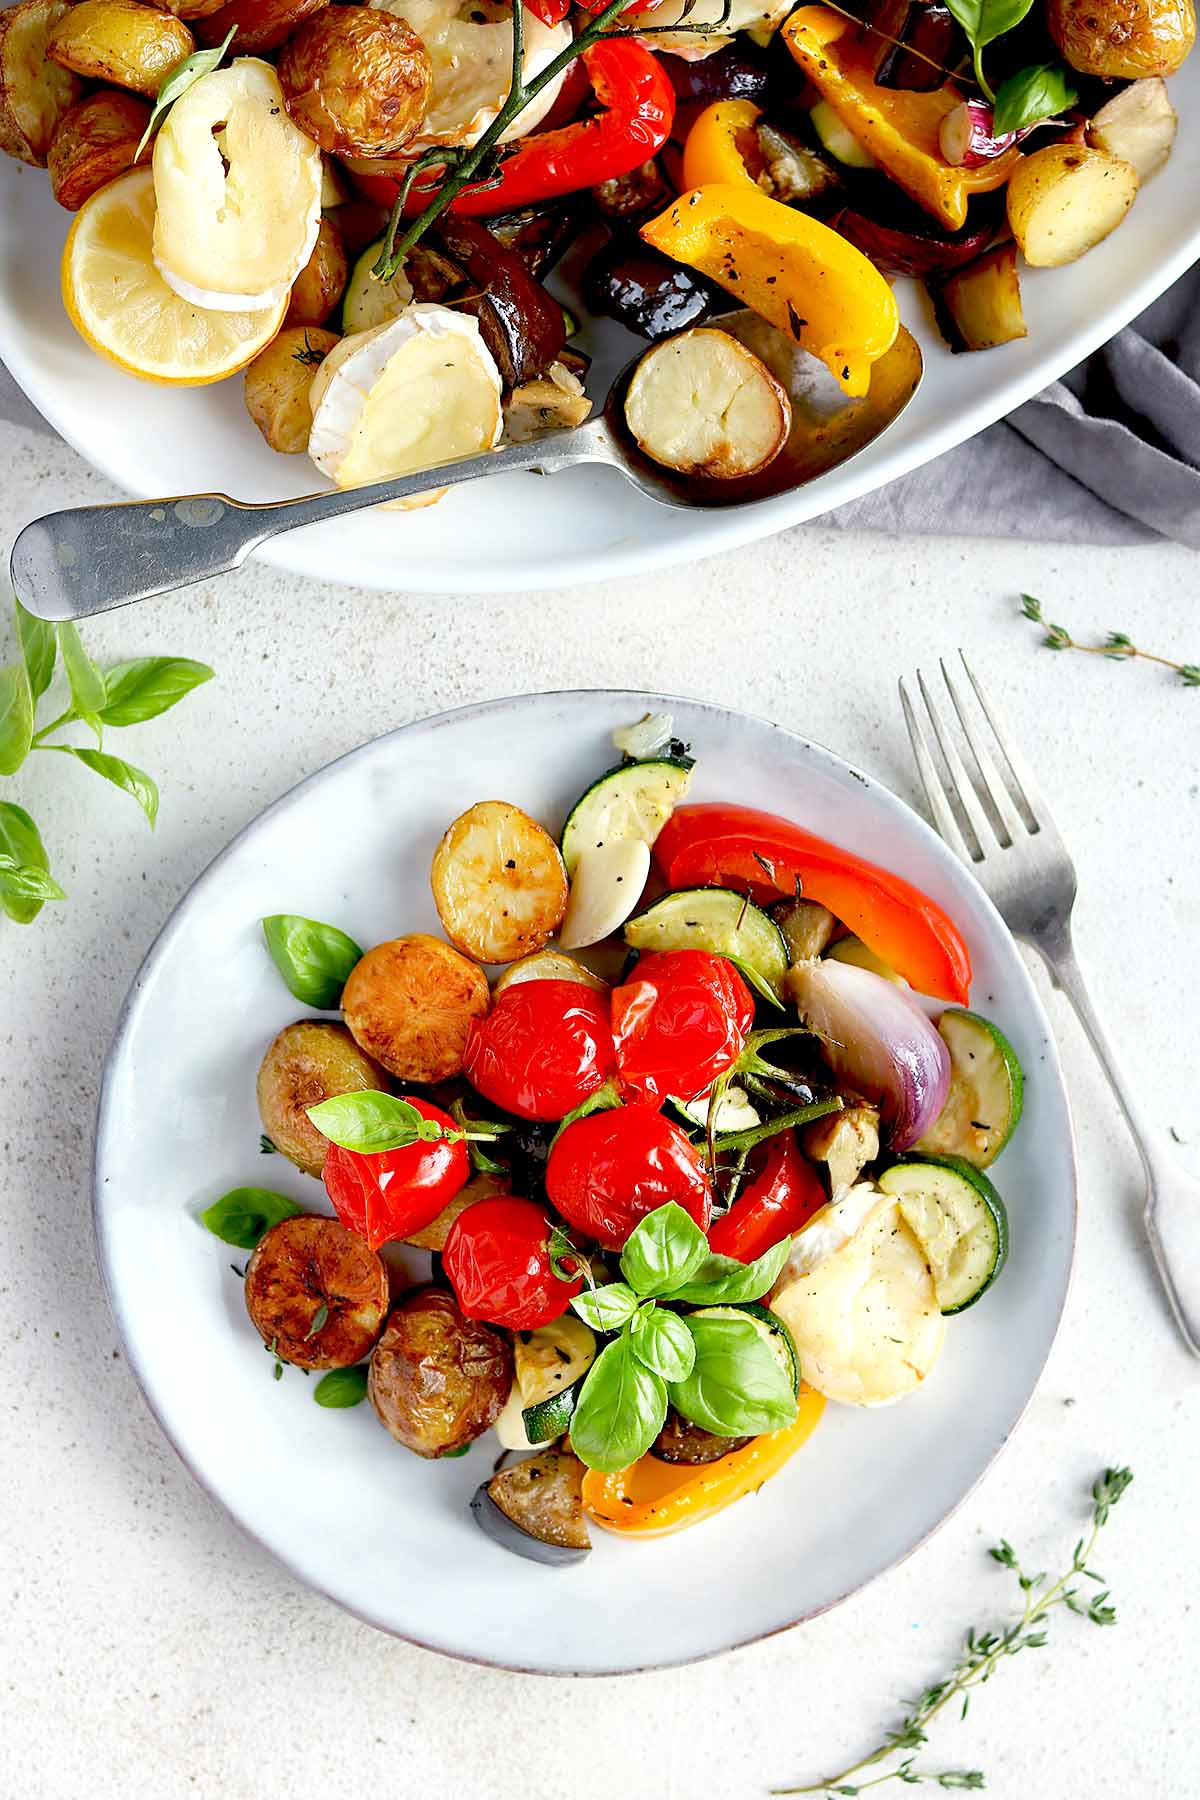 Roasted vegetables with goats cheese, potatoes, roasted garlic, cherry vine tomatoes and basil